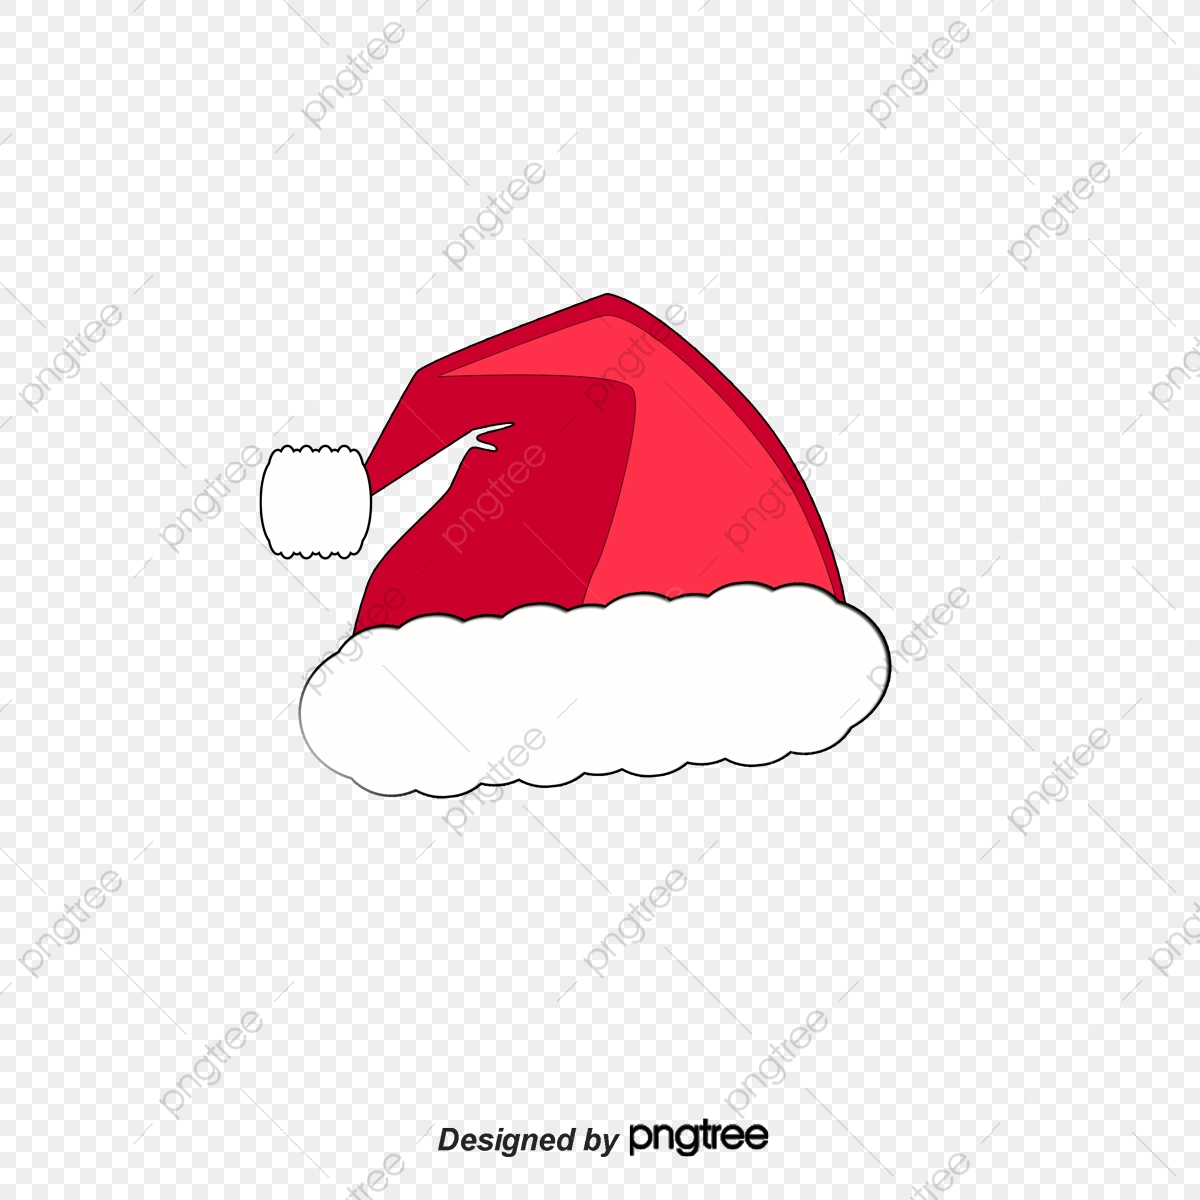 Christmas Hat Transparent Clipart.Red Christmas Hats Santa Hat Santa Claus Christmas Png